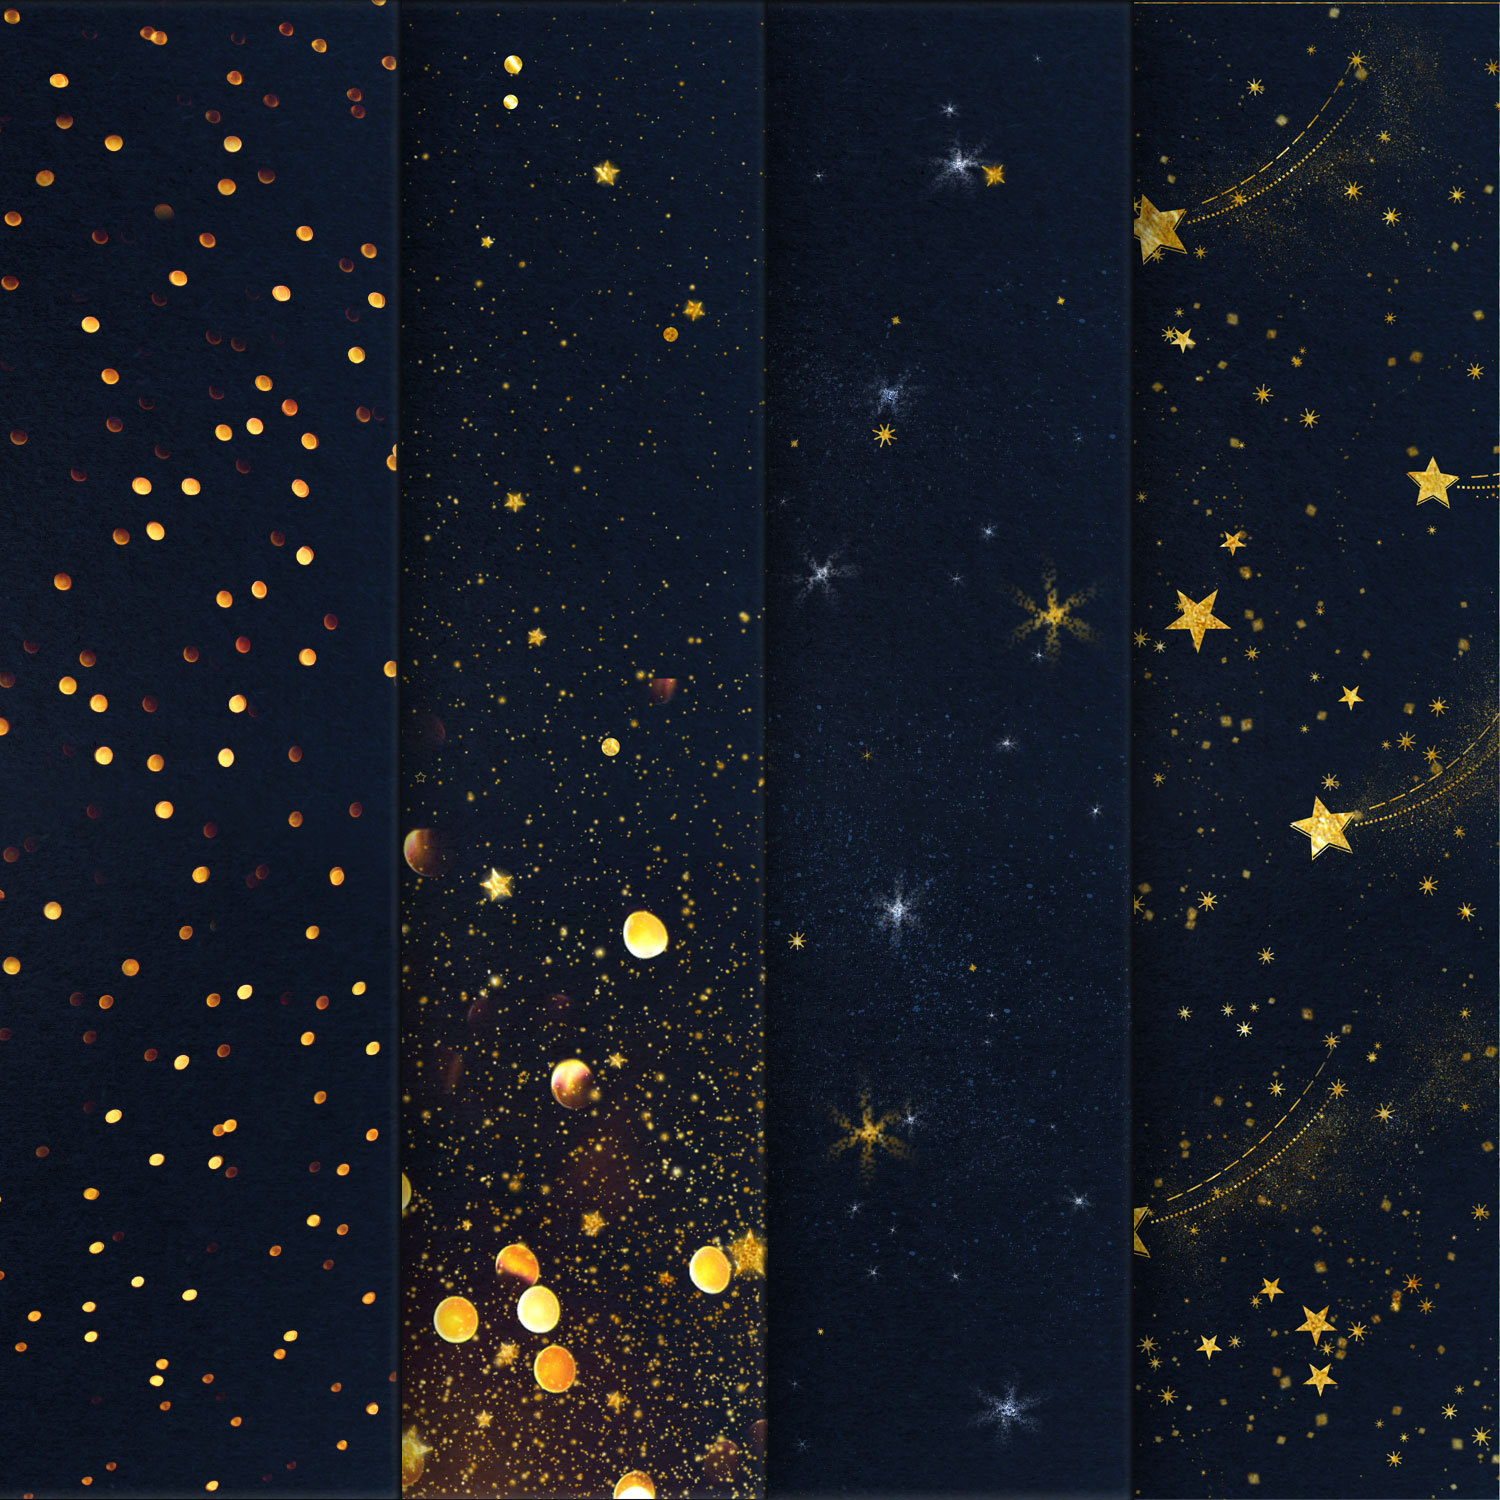 Starry Night Backgrounds example image 4